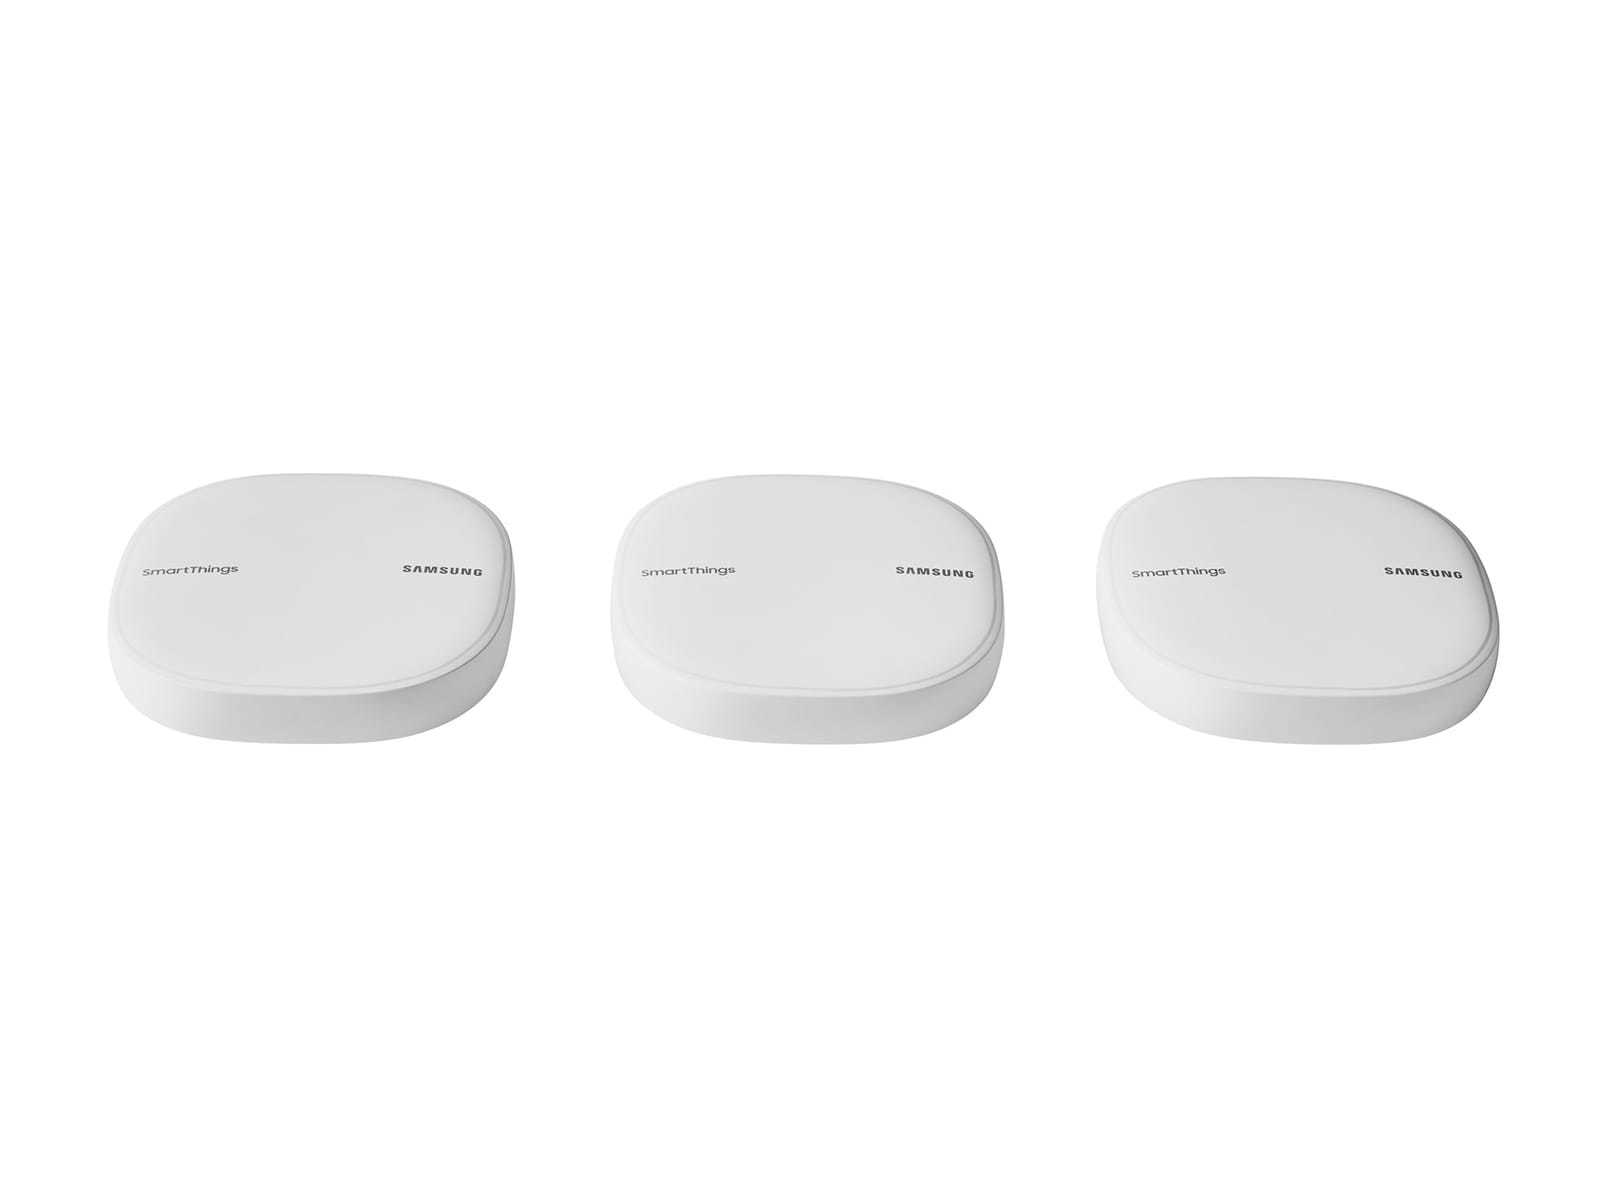 Samsung SmartThings Wifi ET-WV525 - central controller